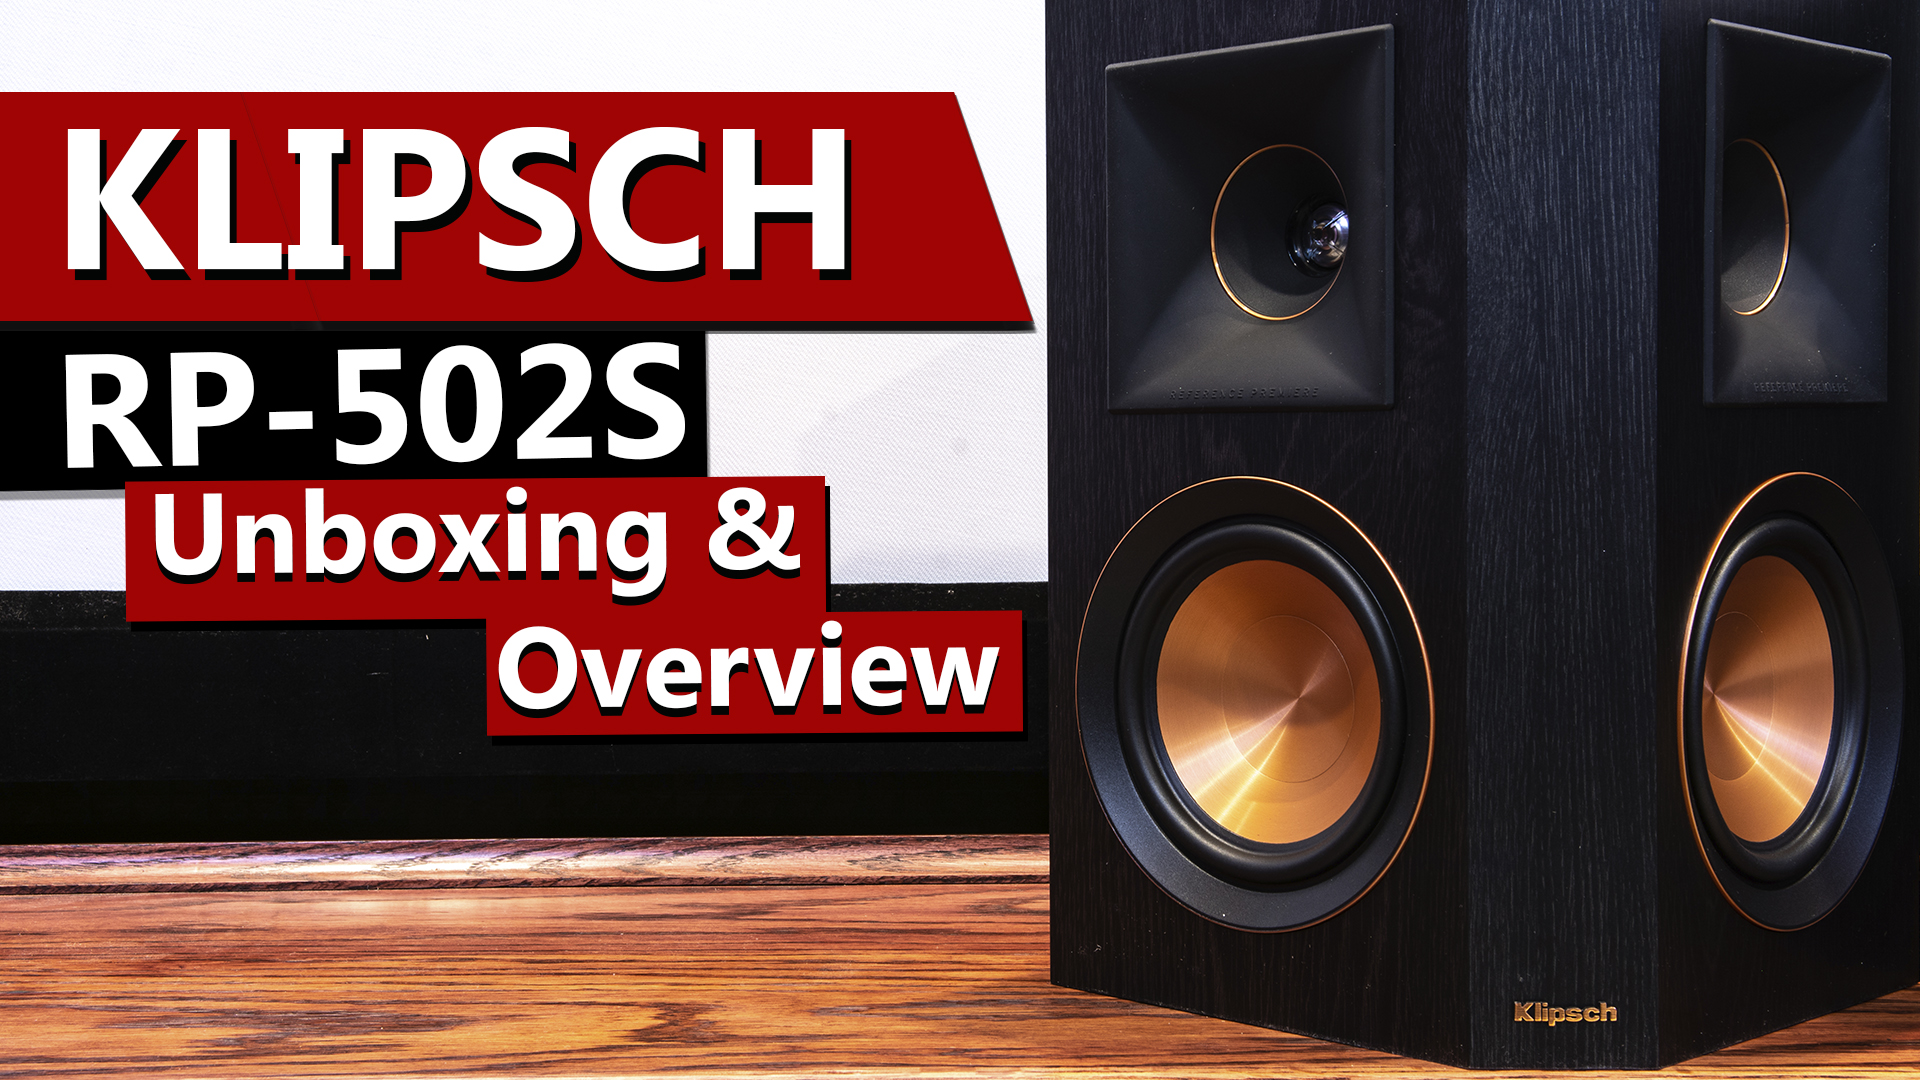 Klipsch RP-502S Reference Premiere Surround Speaker Unboxing and Overview